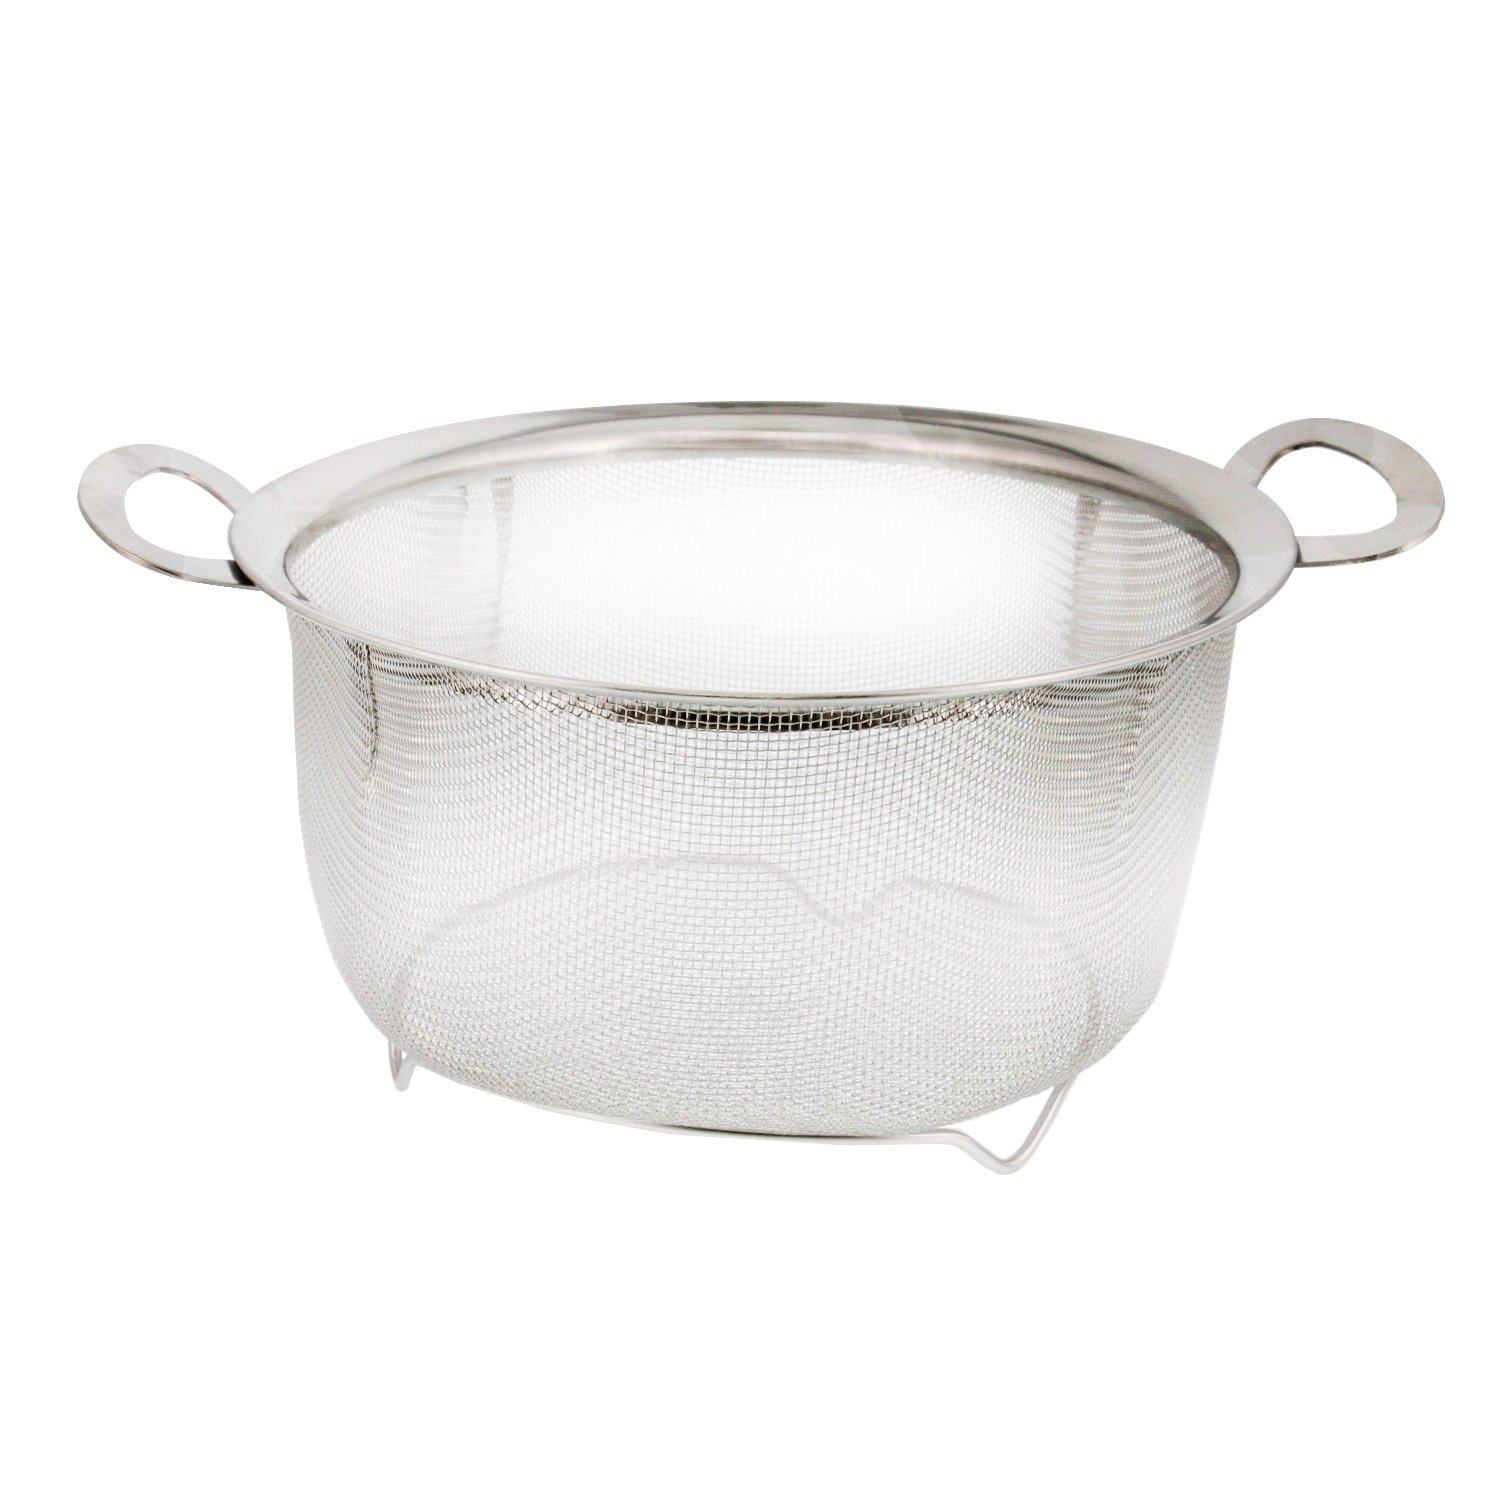 U S Kitchen Supply 3 Quart Stainless Steel Mesh Net